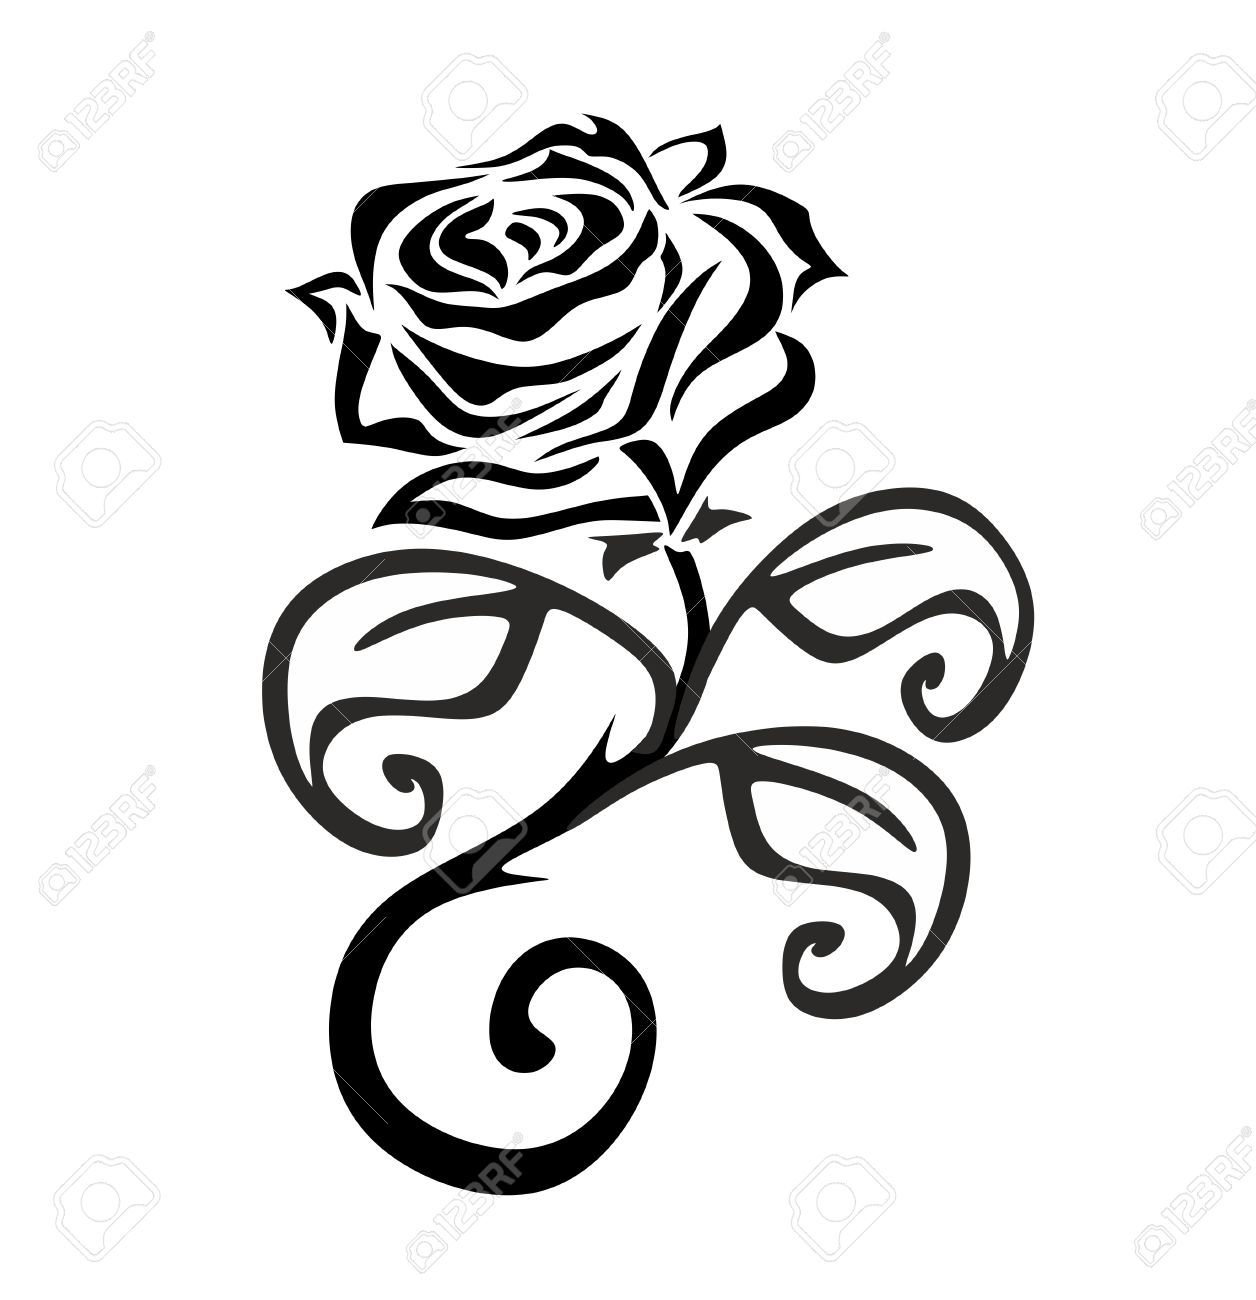 1256x1300 Black And White Rose Drawings Free Download Clip Art